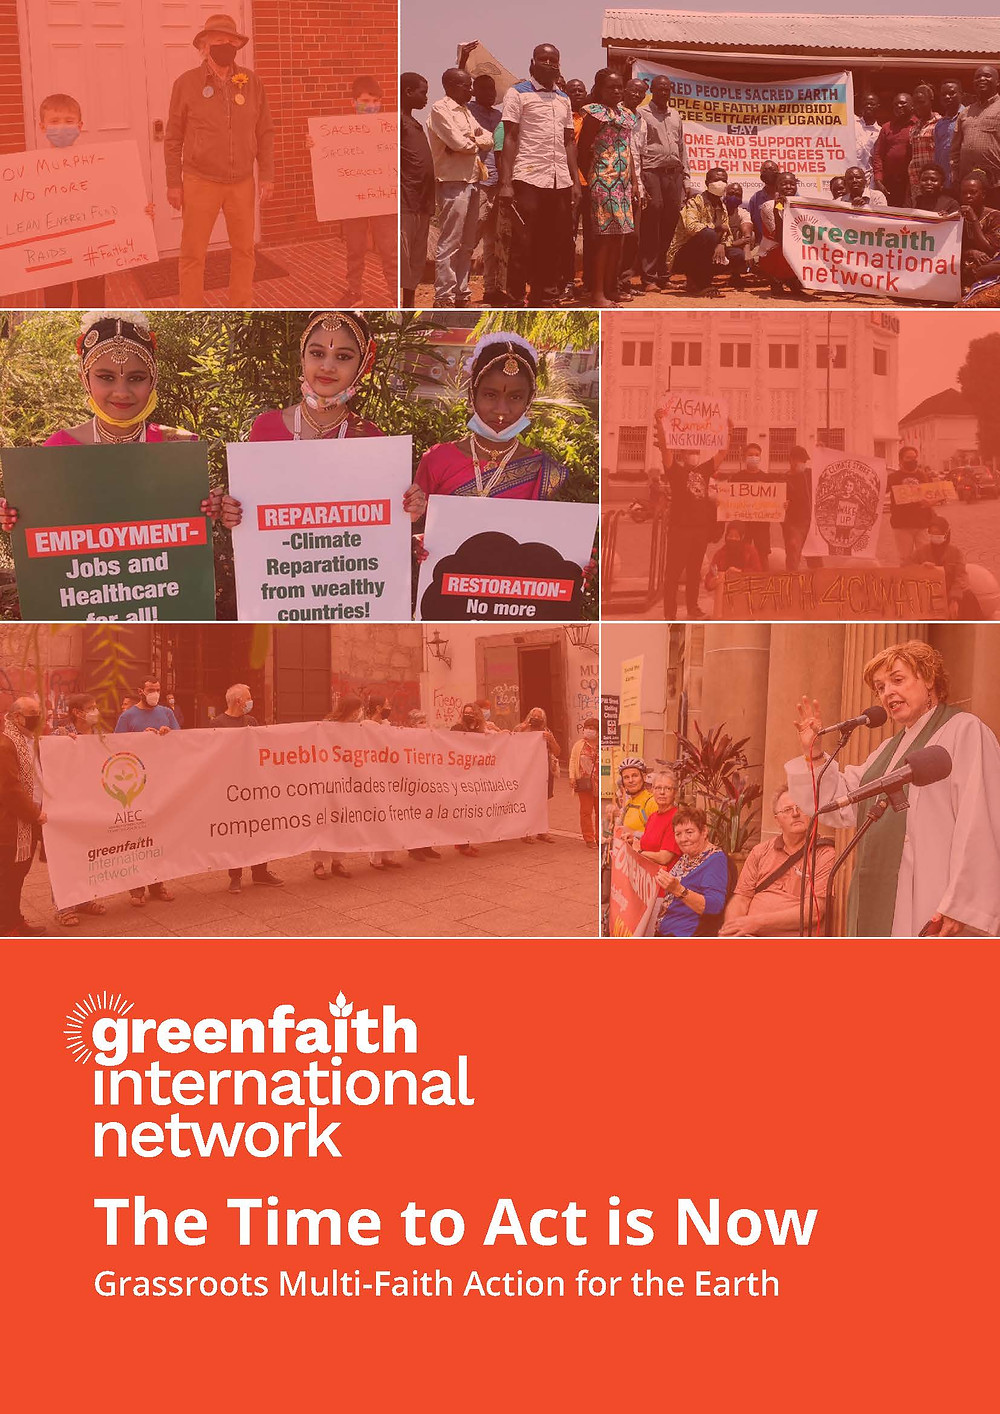 Greenfaith International Network, The Time to Act is Now, Multi-faith Action for Earth